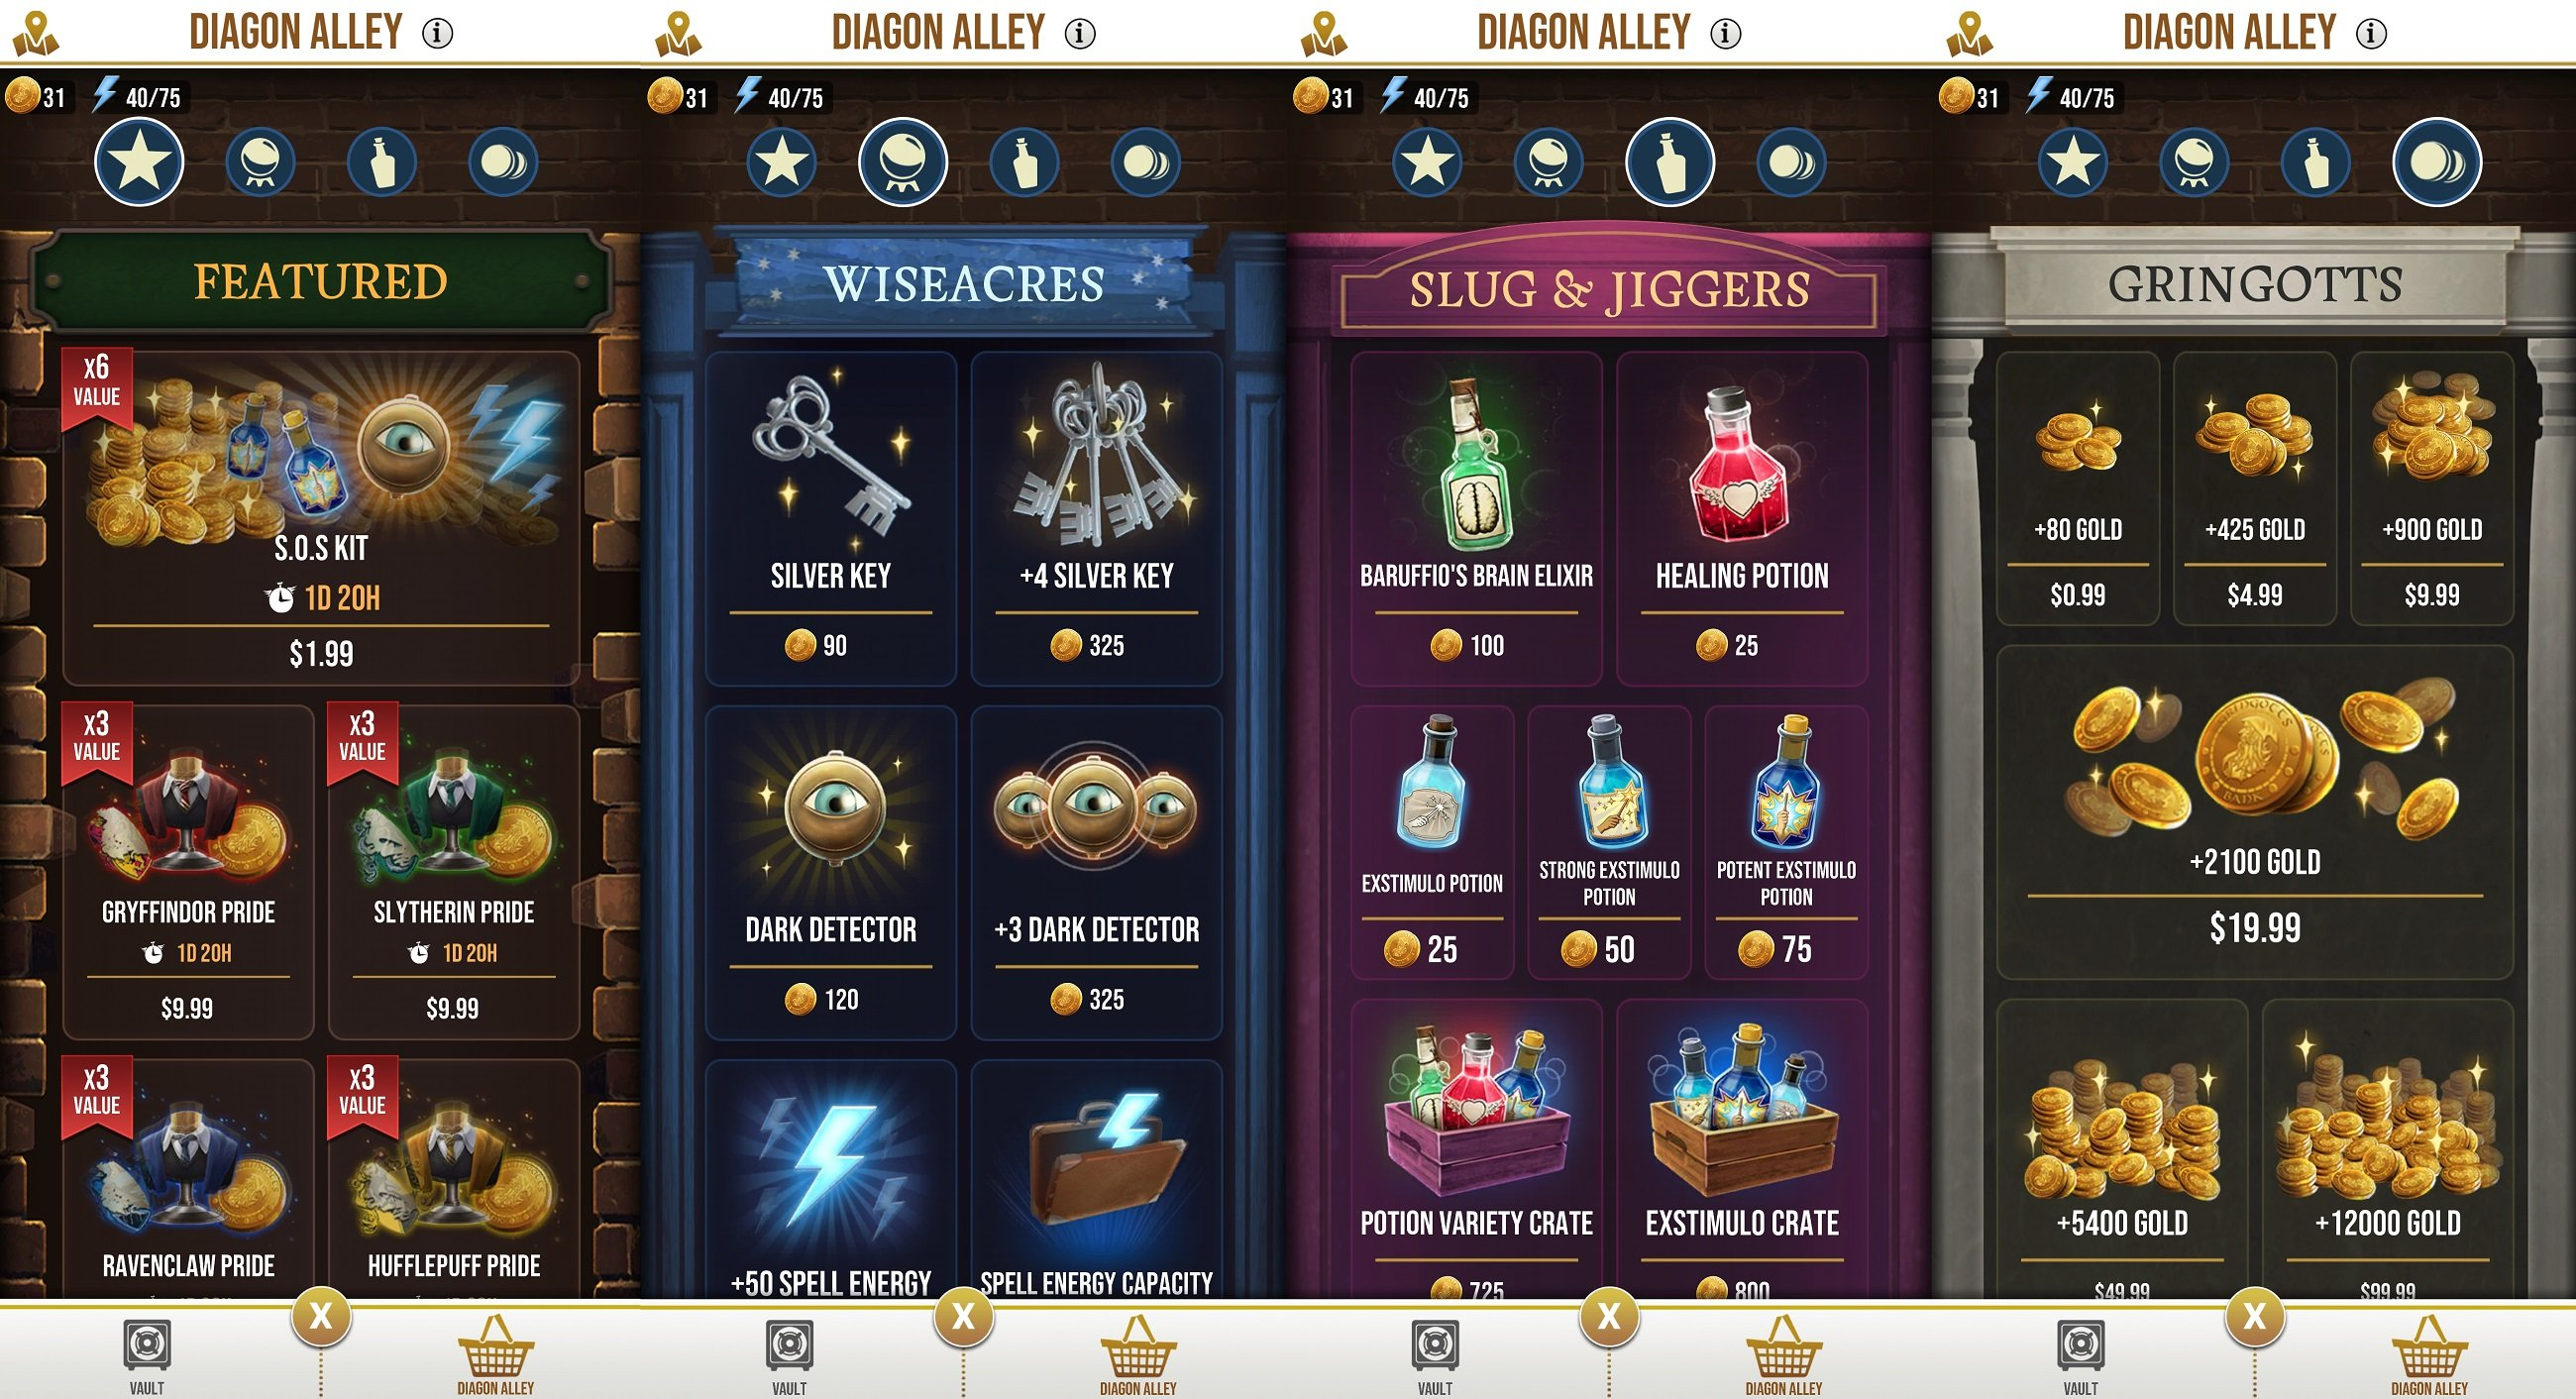 There are microtransactions in Harry Potter Wizards Unite, all of which can be purchased from the Diagon Alley in-game shop.